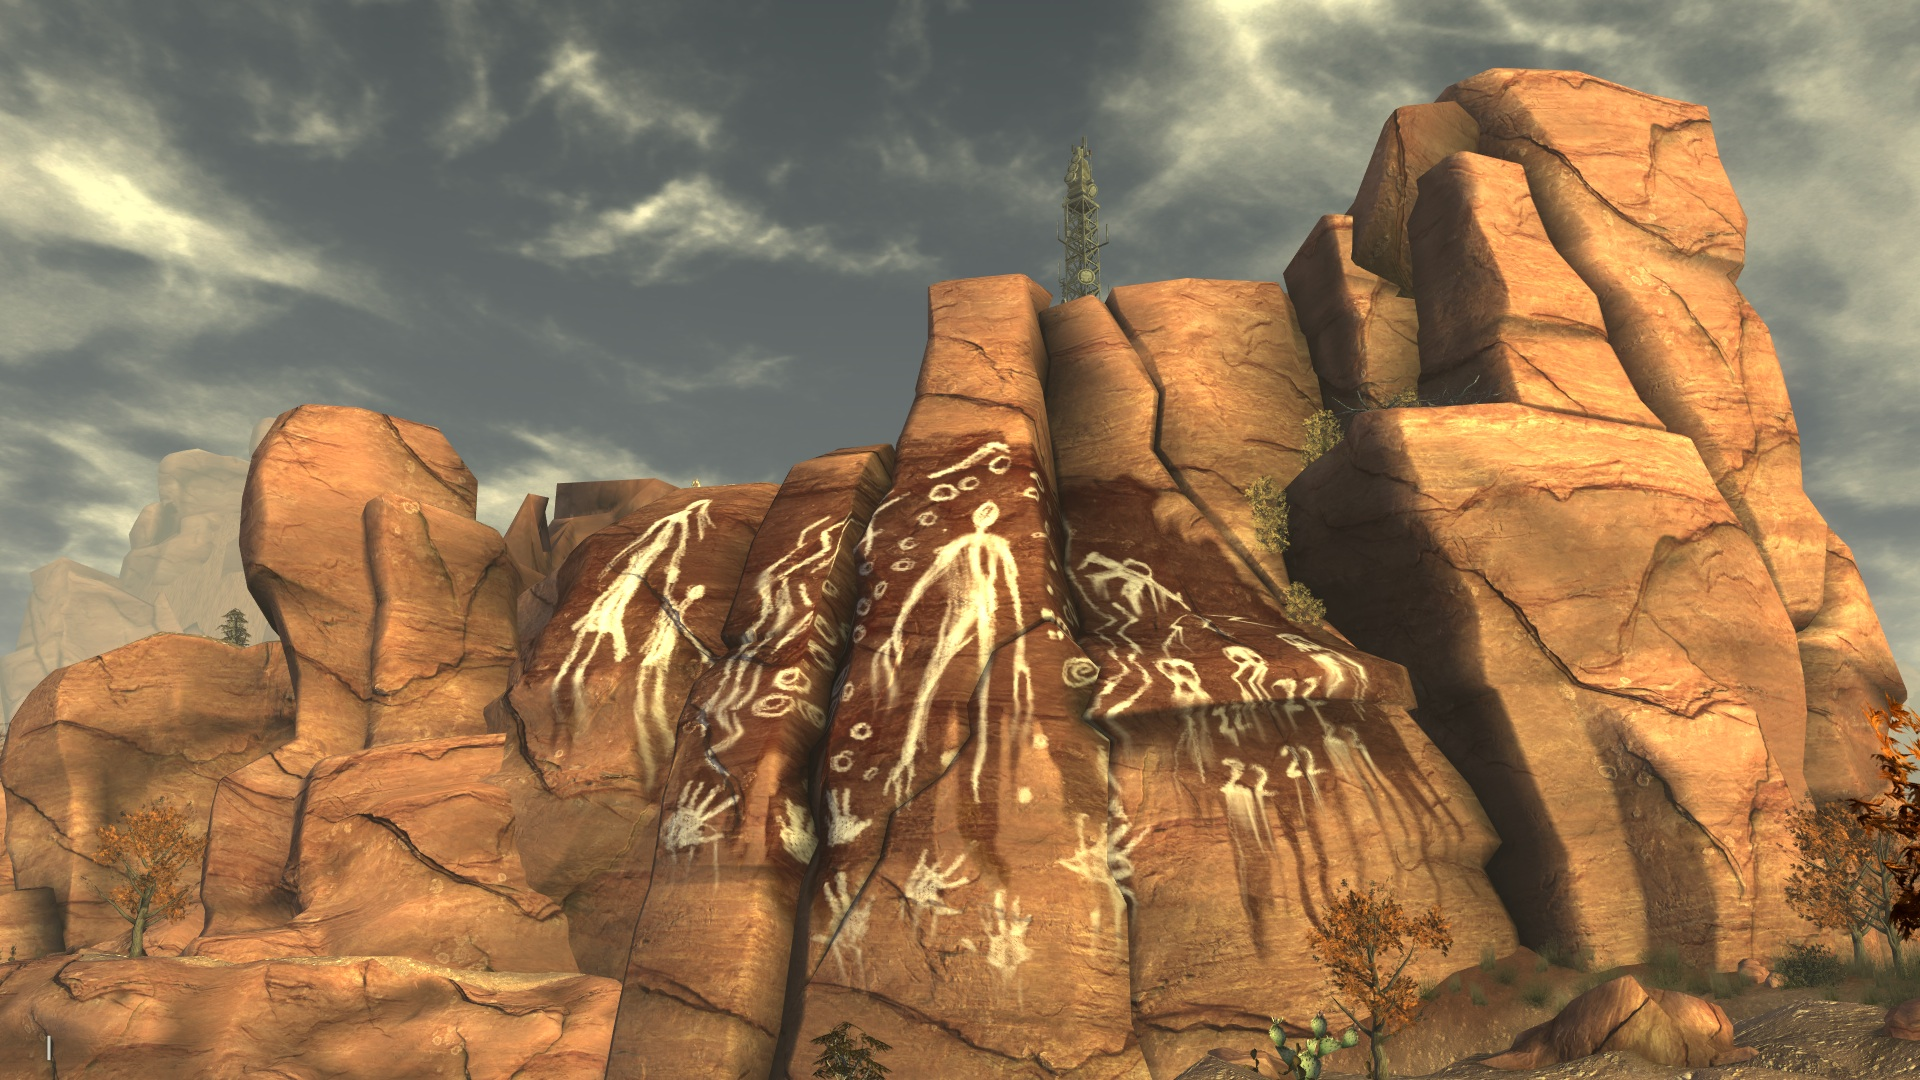 Rude awakening: Why Fallout: New Vegas felt incomplete